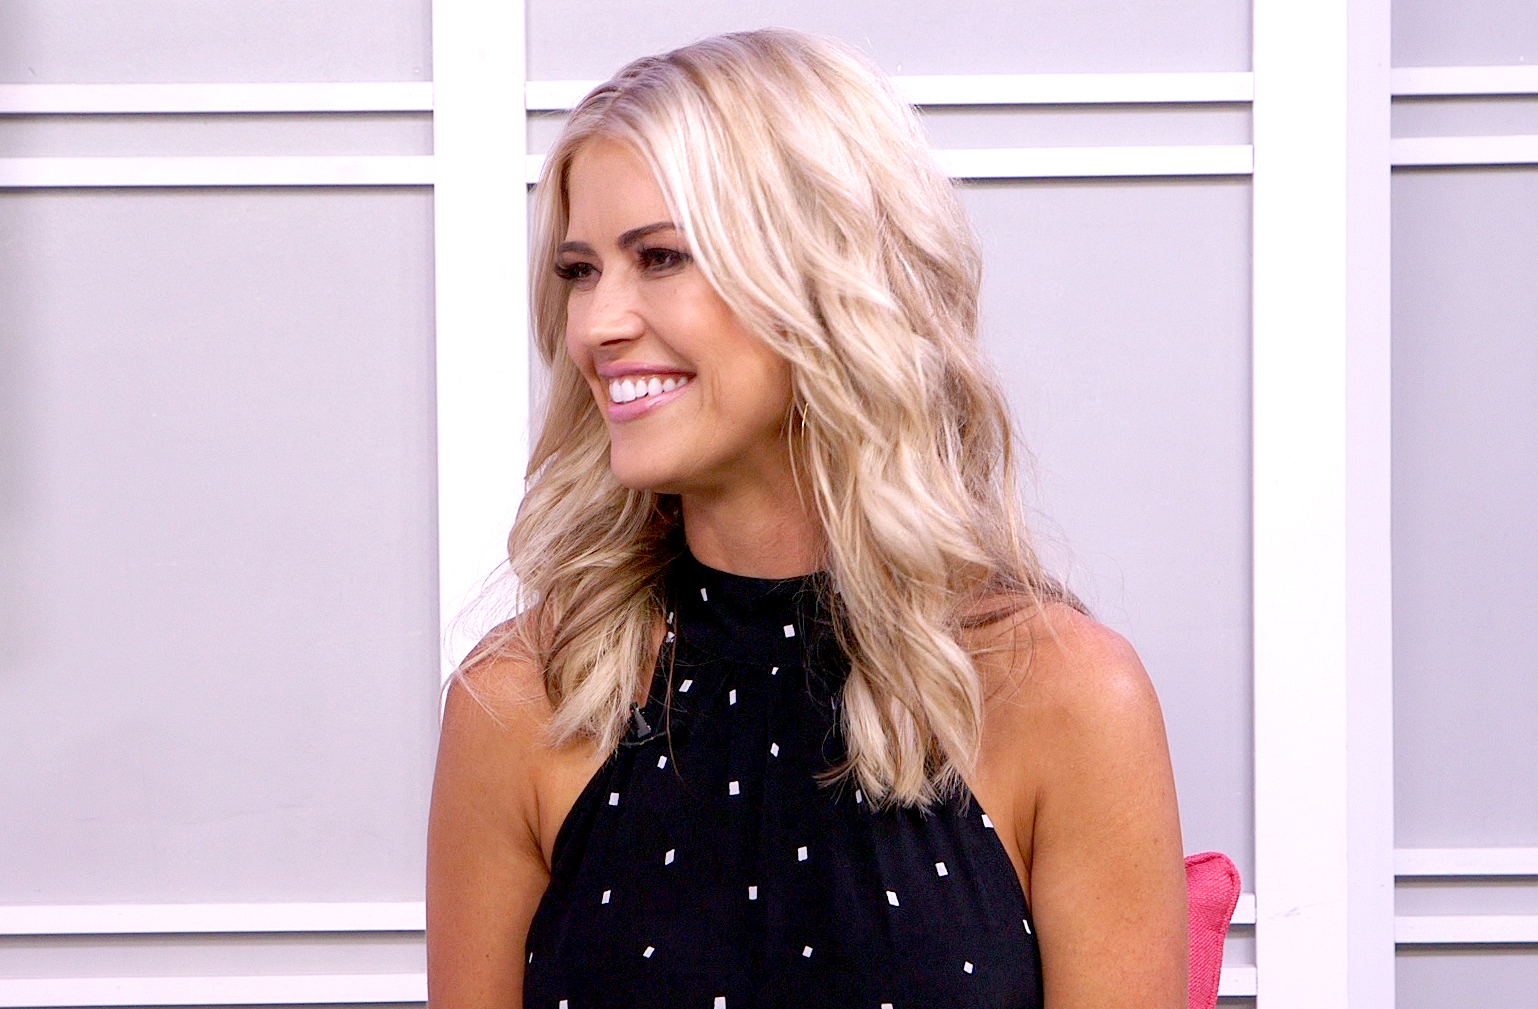 Christina Anstead revealed exclusively to Us Weekly that her exhusband Tarek El Moussa congratulated her after she married Ant Anstead details